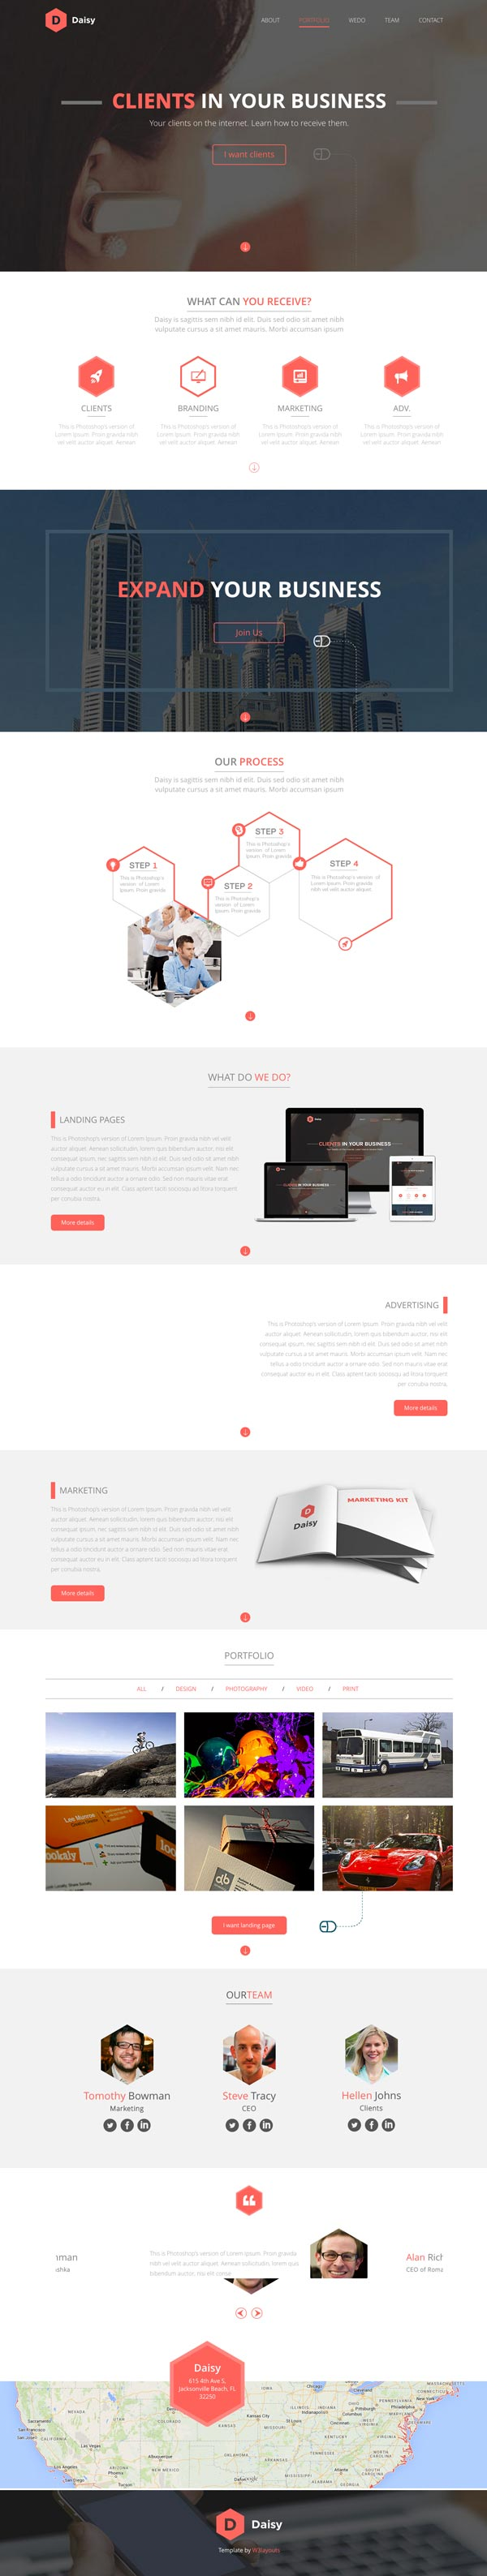 Daisy-template-bootstrap_2